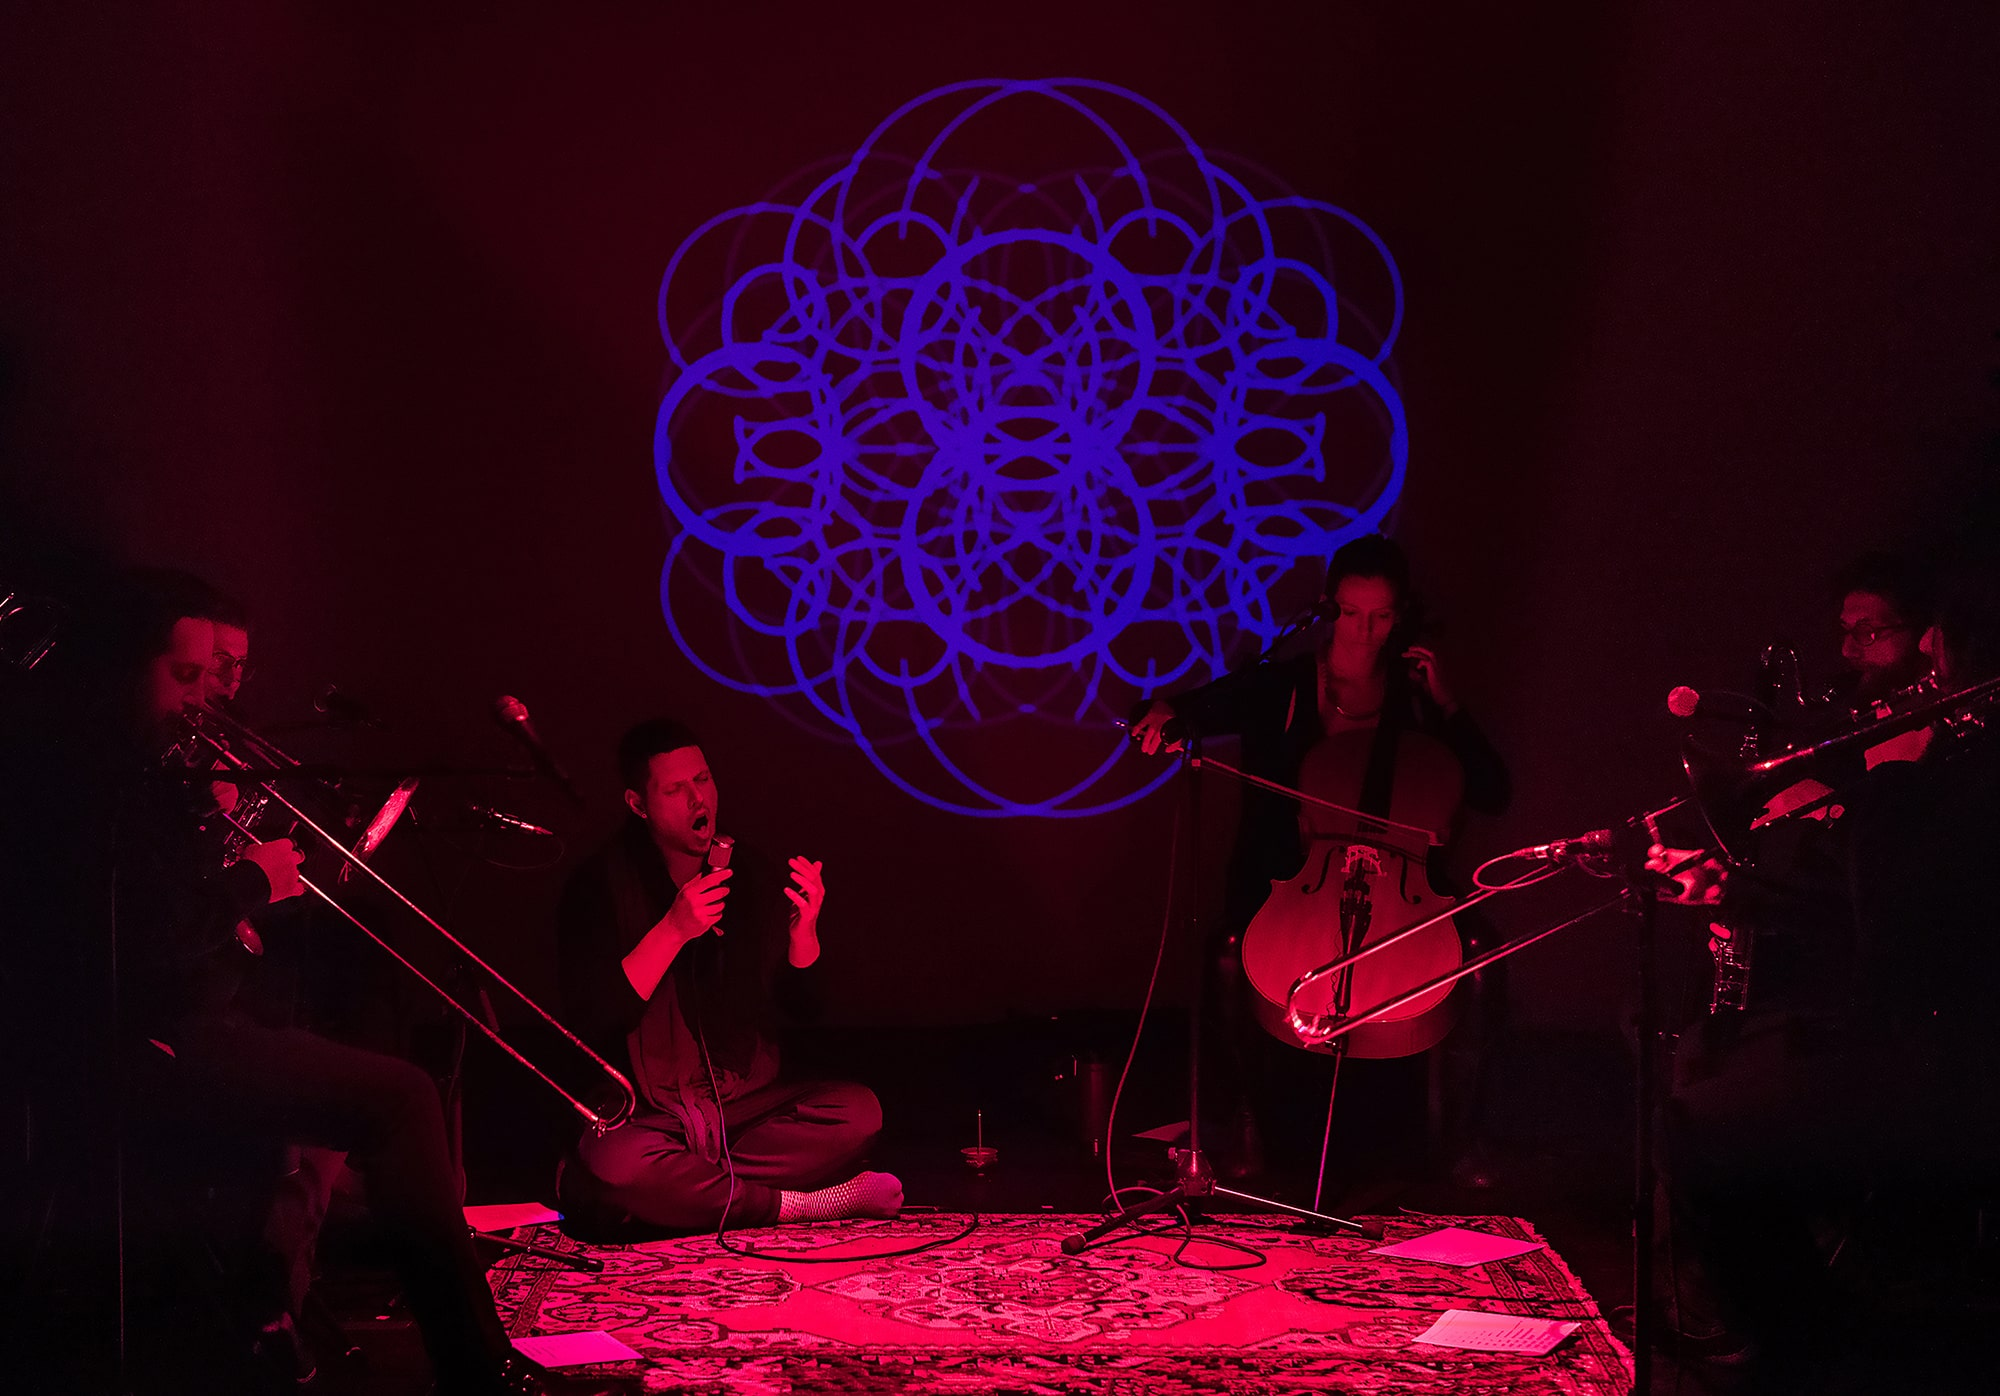 Randy Gibson and ensemble performing *Apparitions of The Four Pillars in The Midwinter Starfield Symmetry under The 72:81:88 Confluence* at the 2016 Avant Music Festival